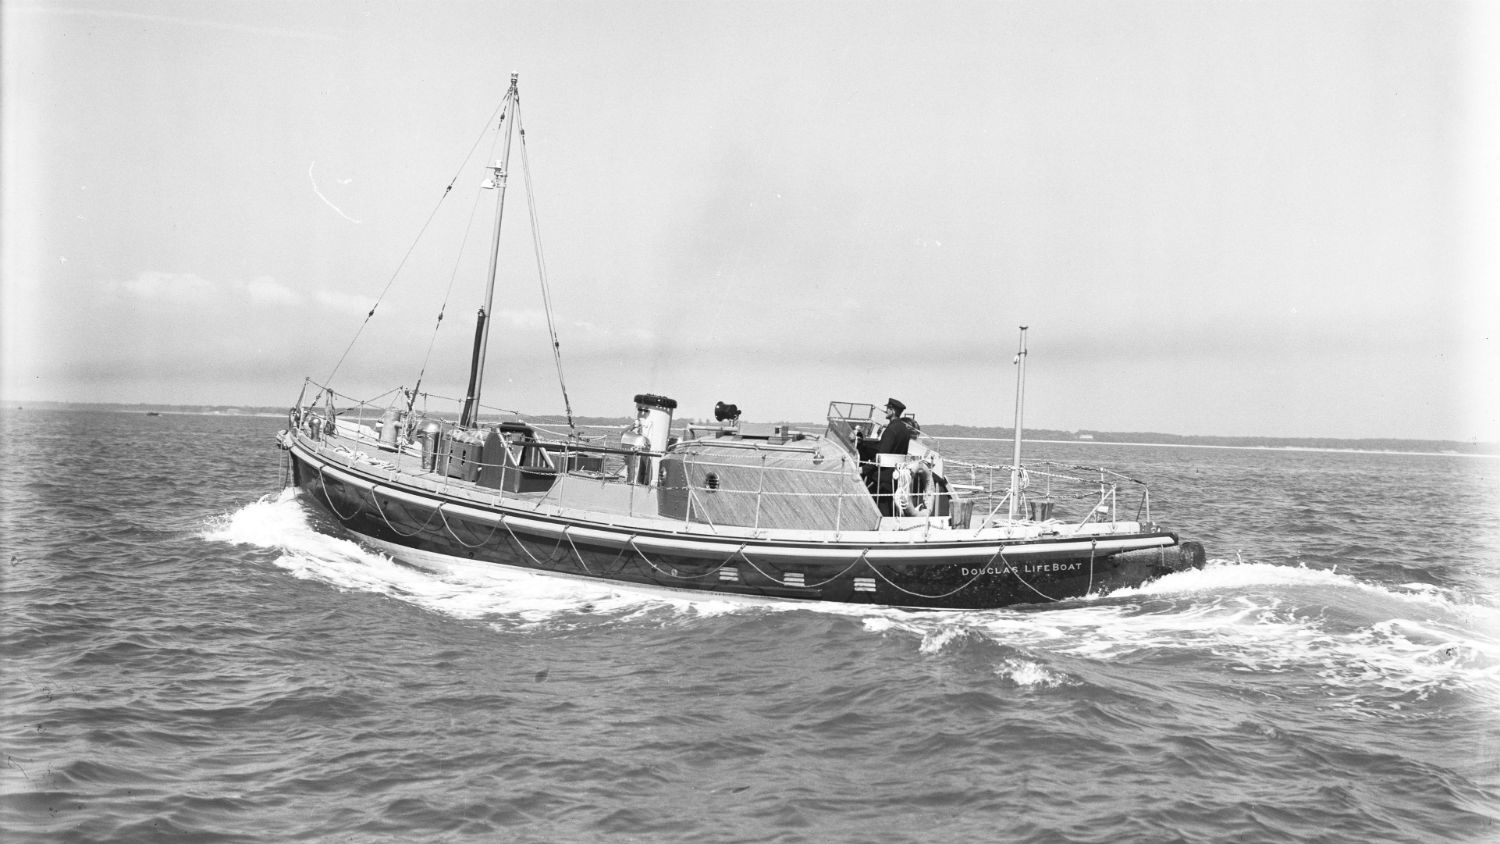 Black and white image of Douglas lifeboat, Millie Walton, while on trials